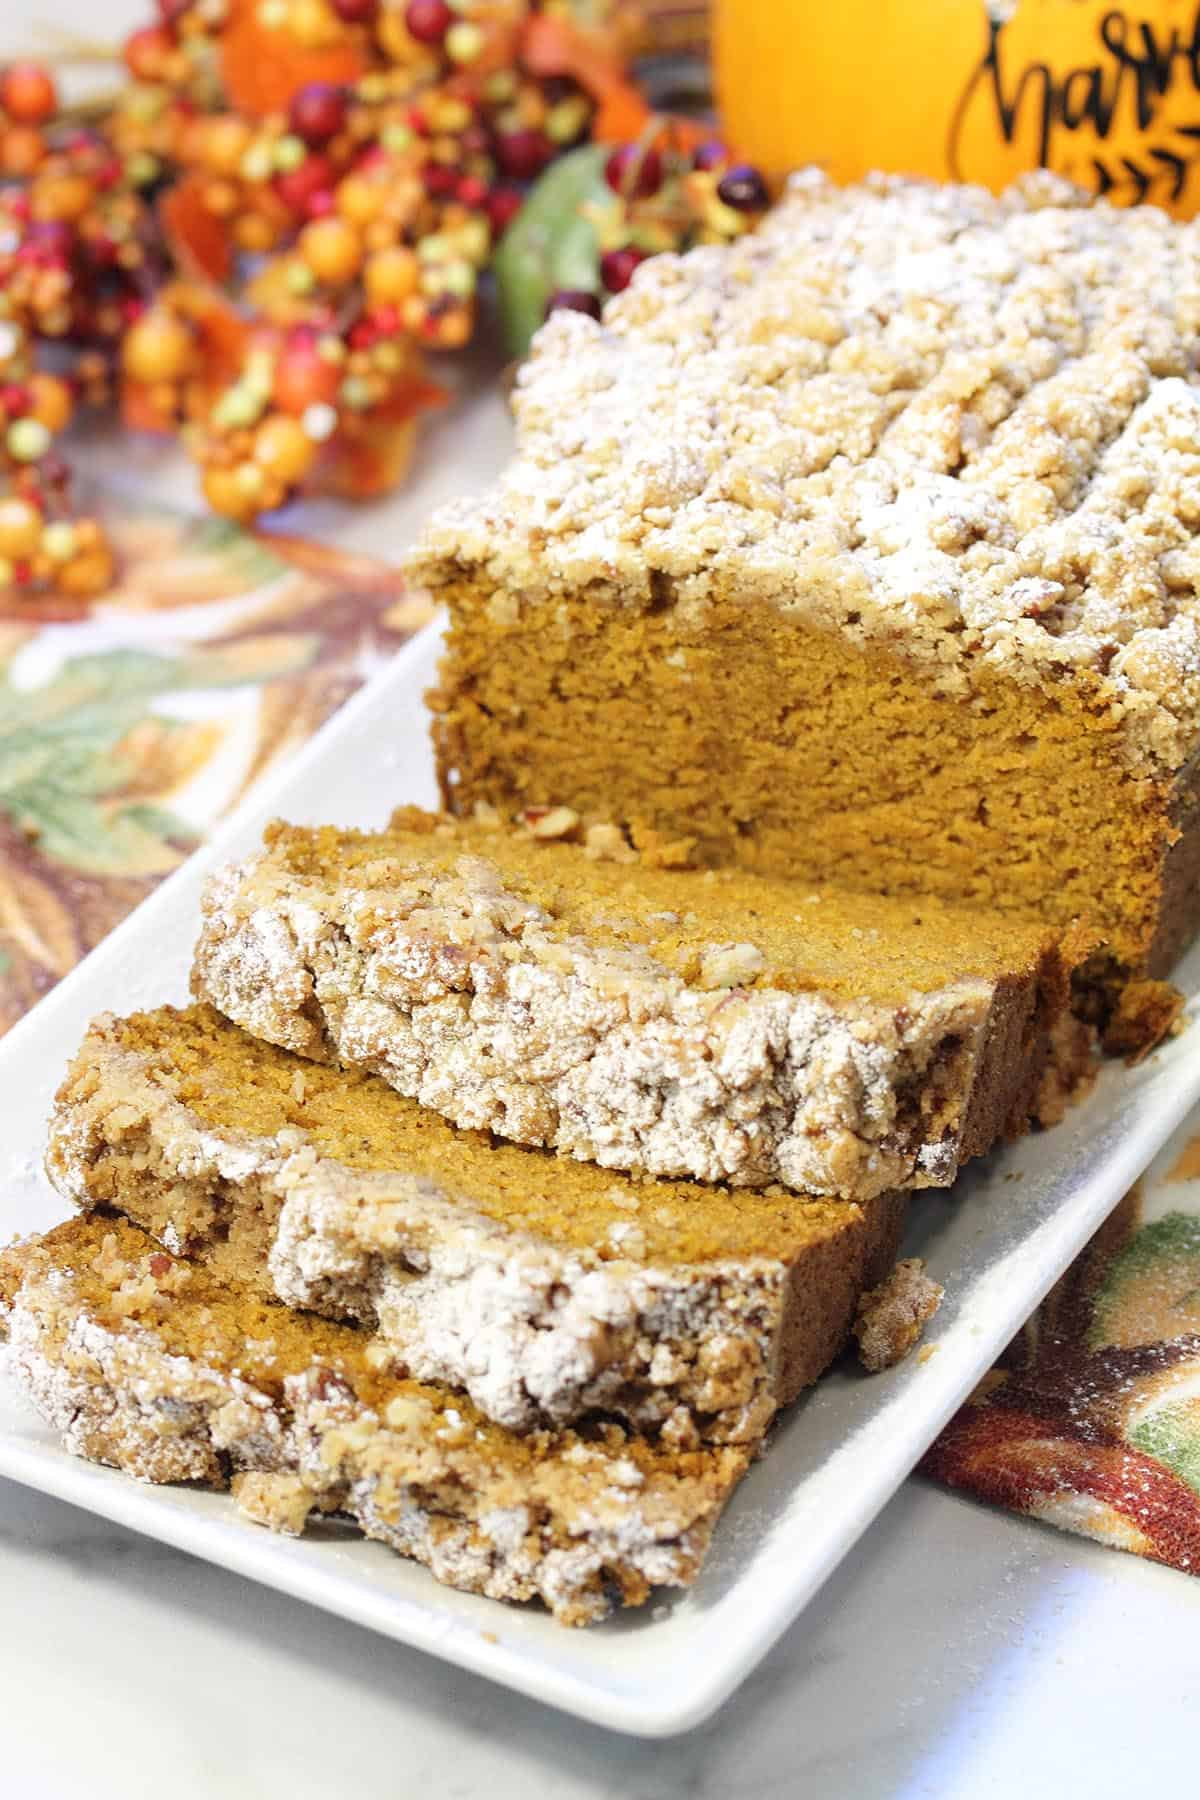 Sliced maple pumpkin bread with closeup of front slices on white platter.